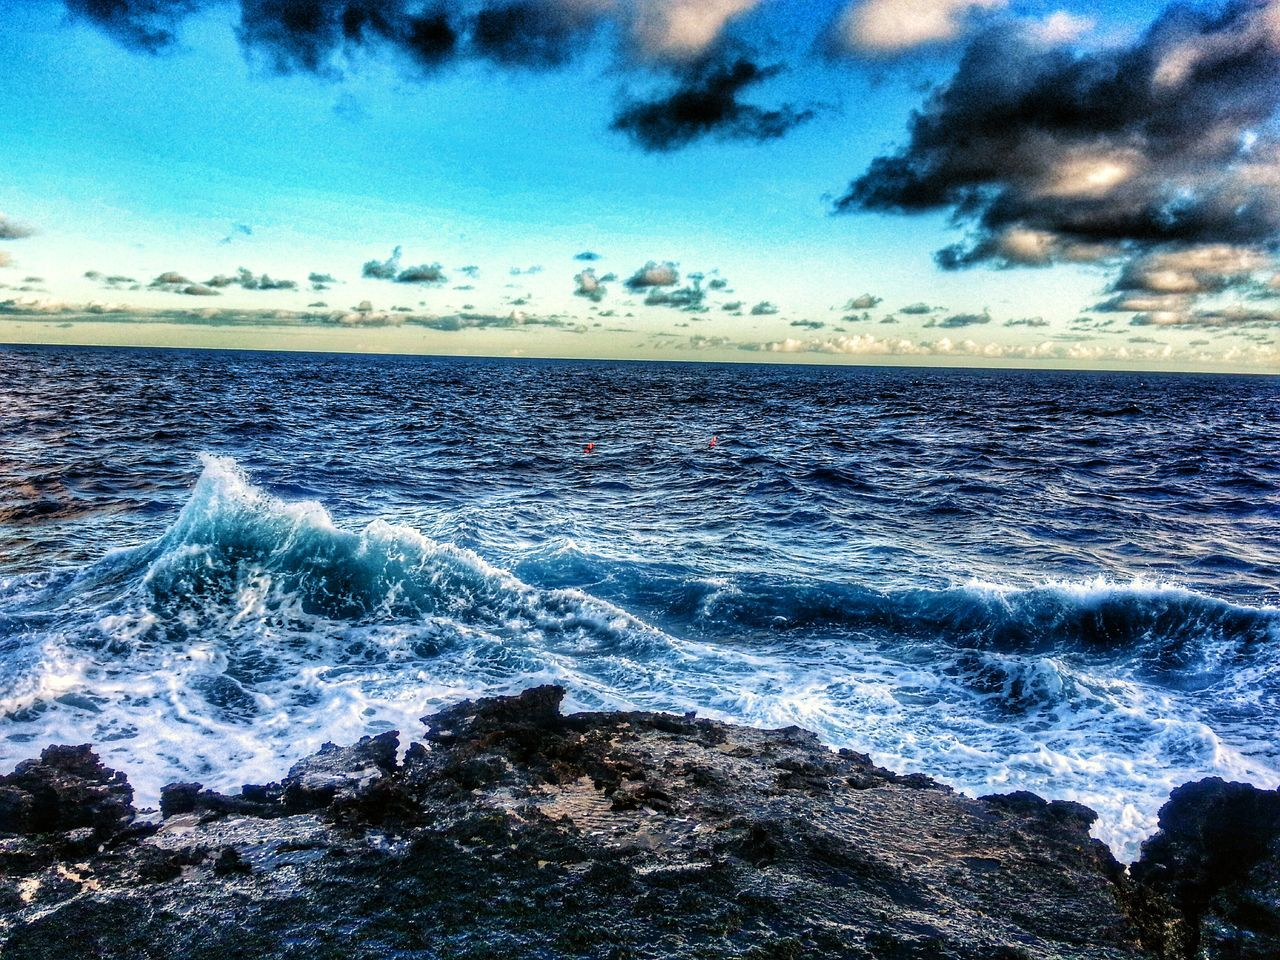 sea, water, beauty in nature, nature, scenics, horizon over water, wave, sky, tranquil scene, tranquility, outdoors, cloud - sky, no people, idyllic, rippled, motion, blue, day, beach